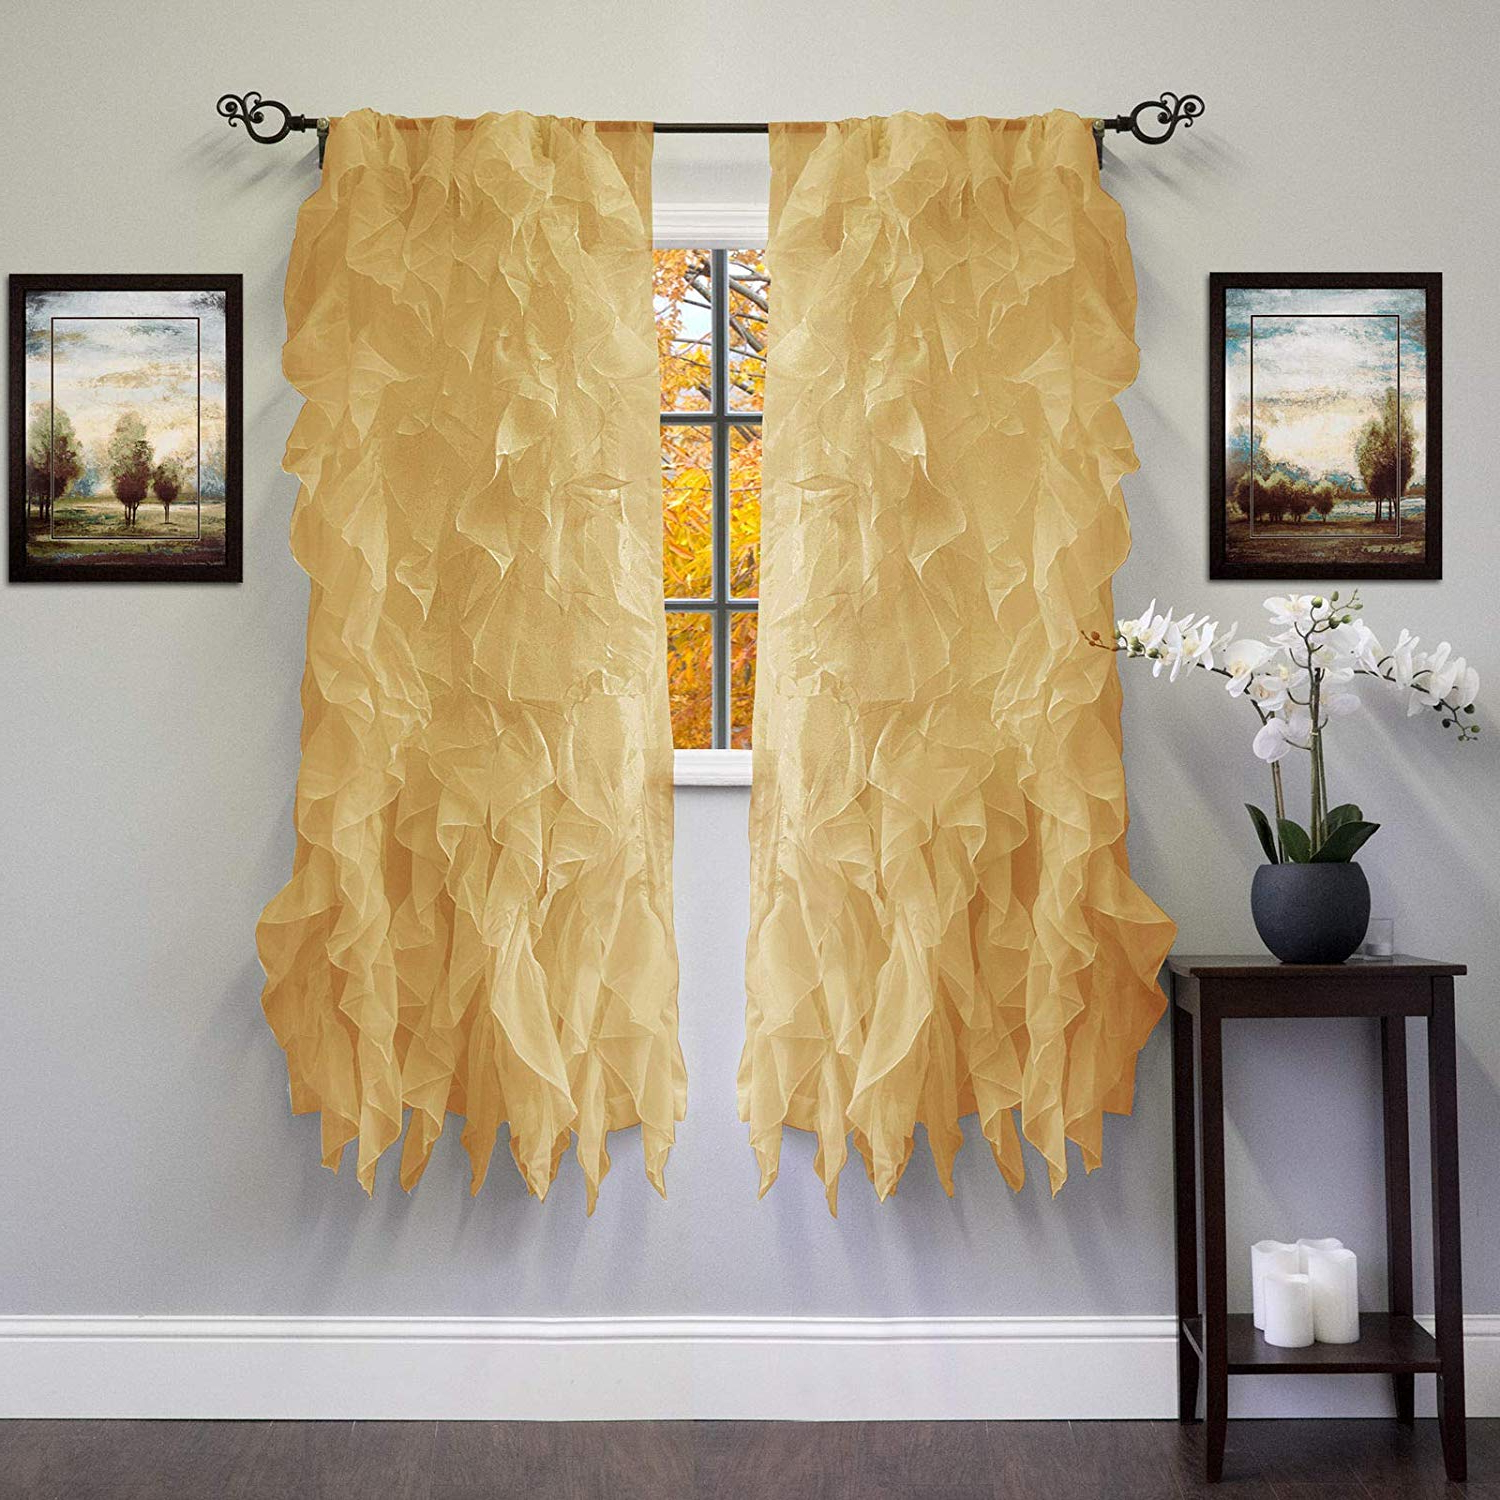 Most Popular Amazon: Abeautifulseller Chic Sheer Voile Vertical Regarding Chic Sheer Voile Vertical Ruffled Window Curtain Tiers (View 4 of 20)